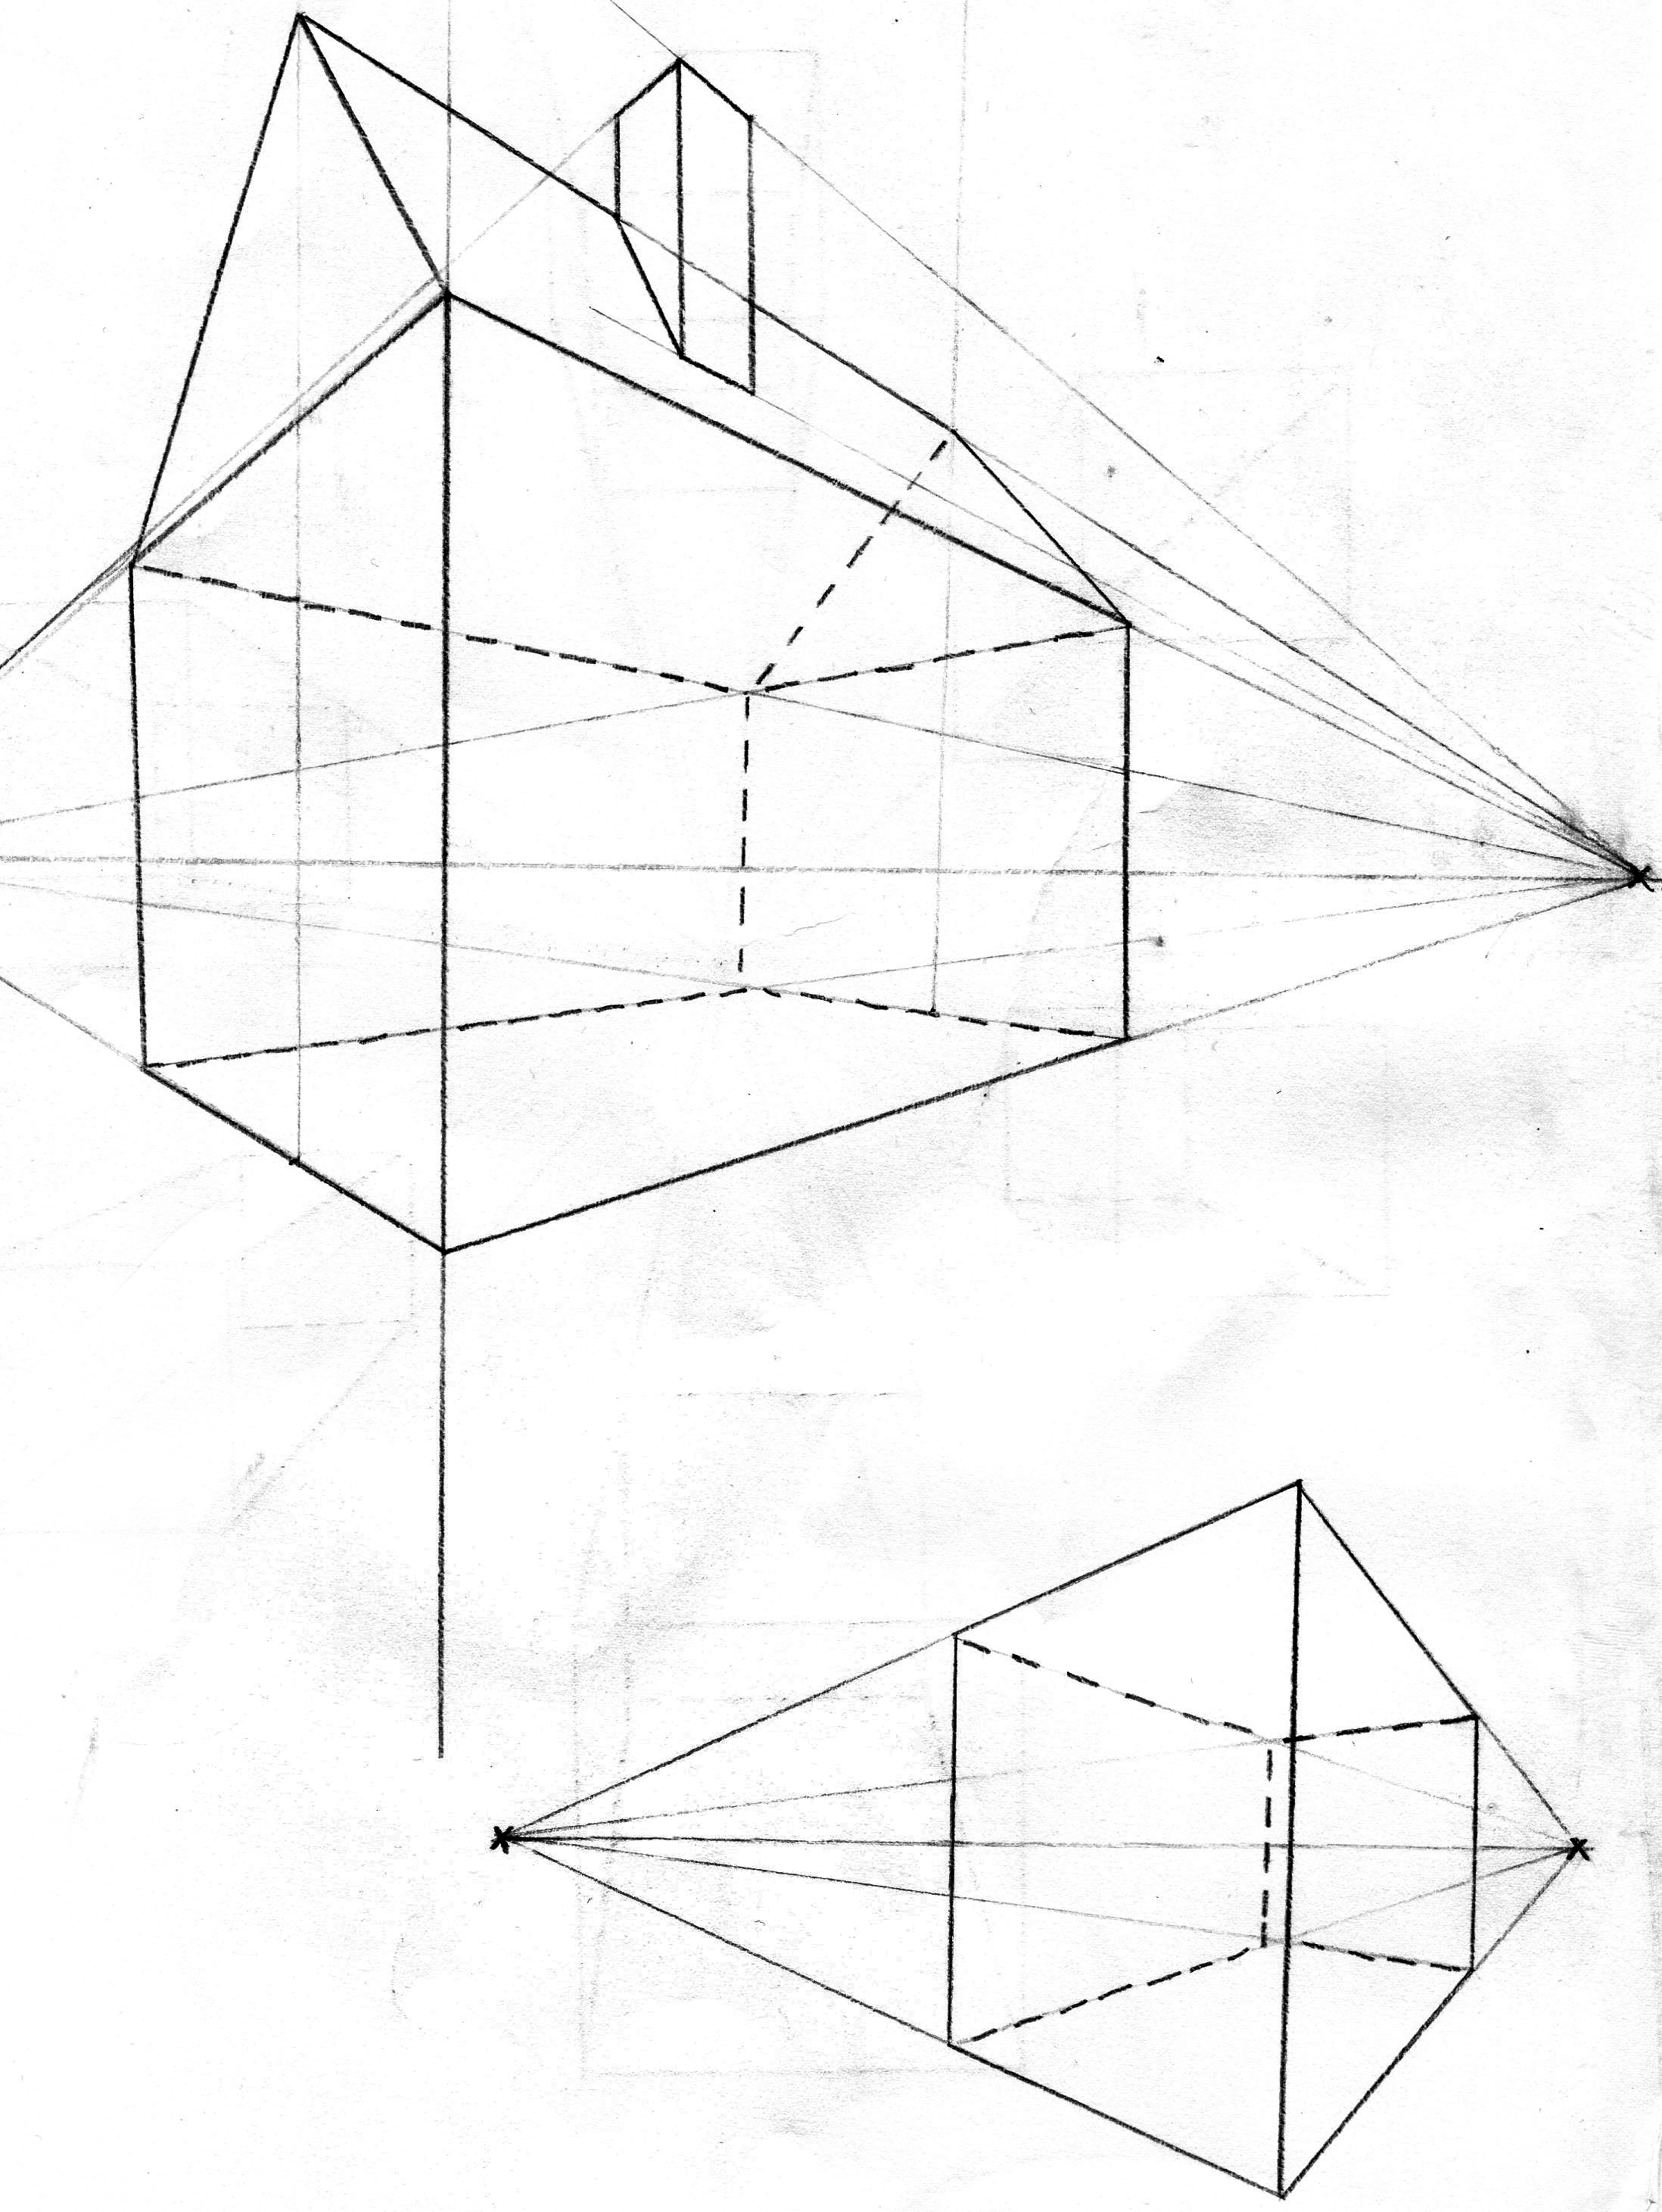 Drawn shapes perspective drawing Art you The 3 show